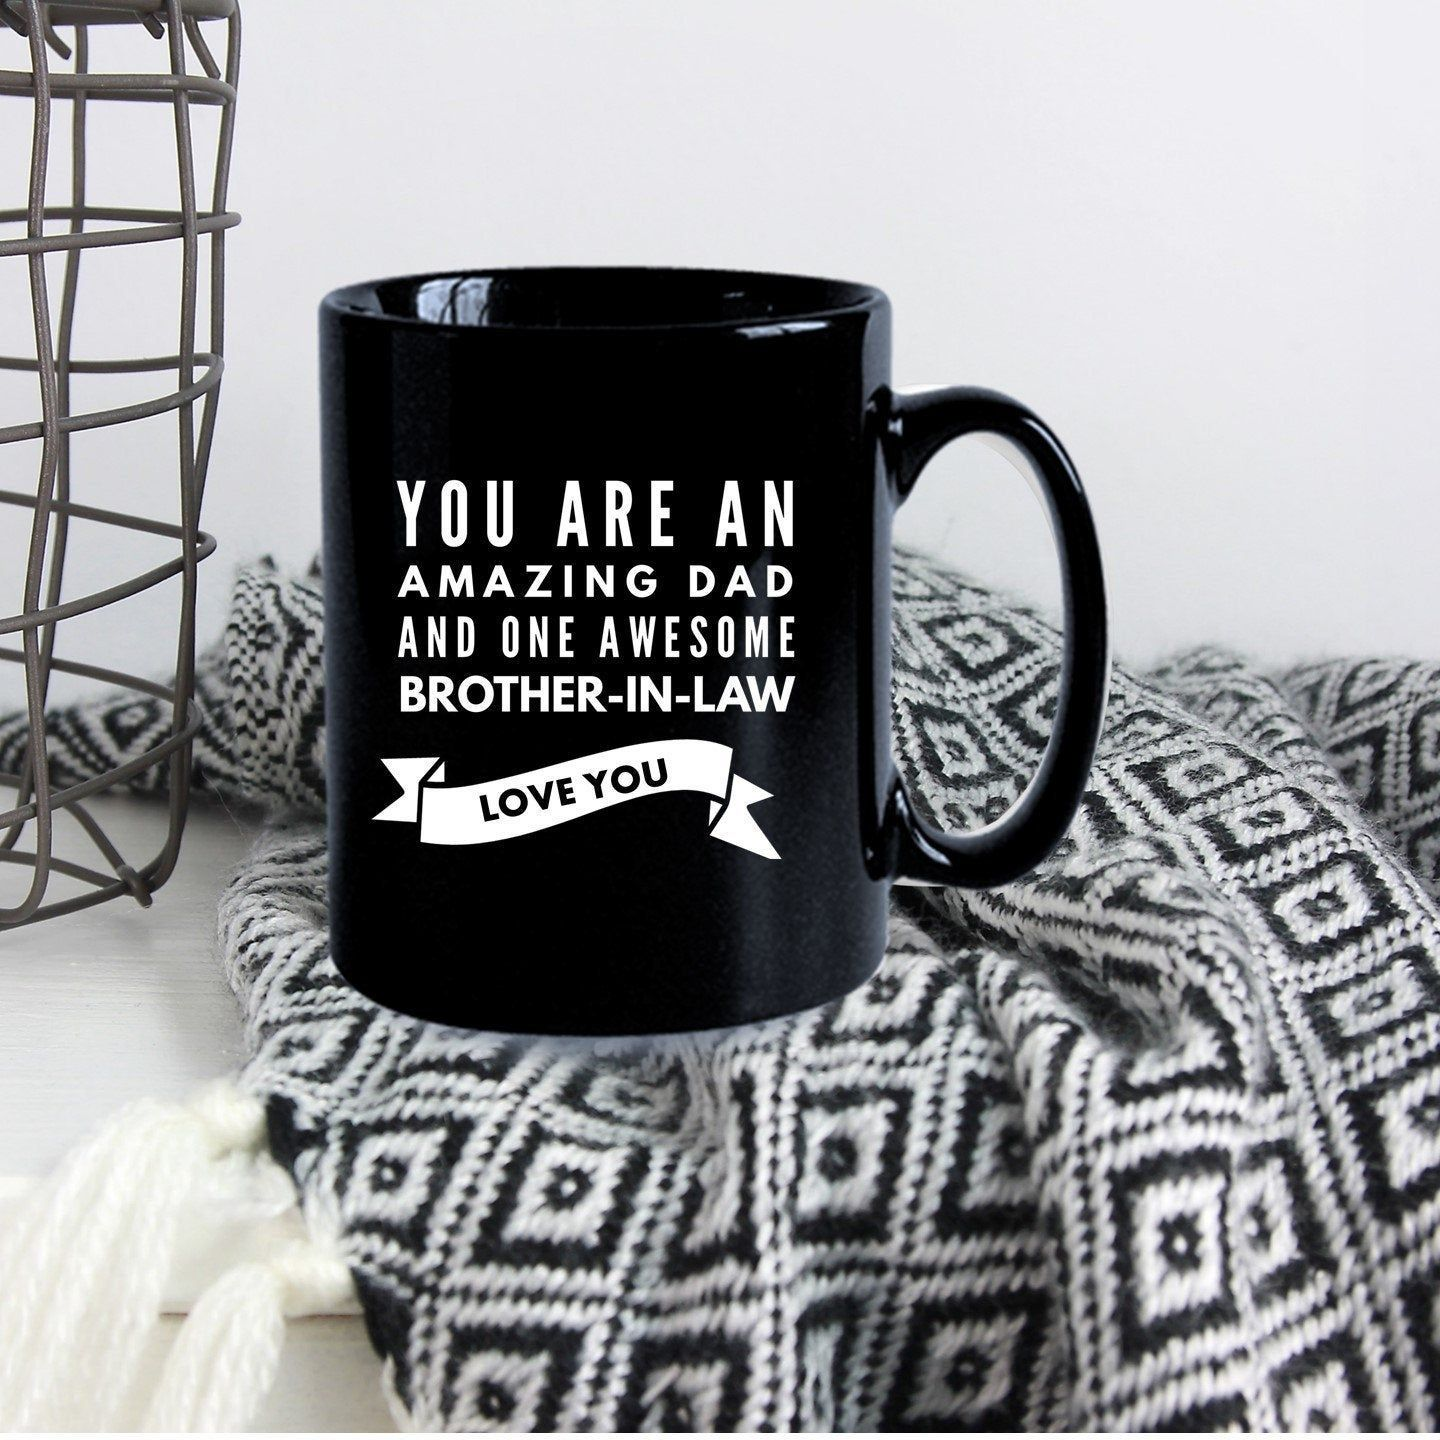 Fathers day gift for brotherinlaw coffee mug gift